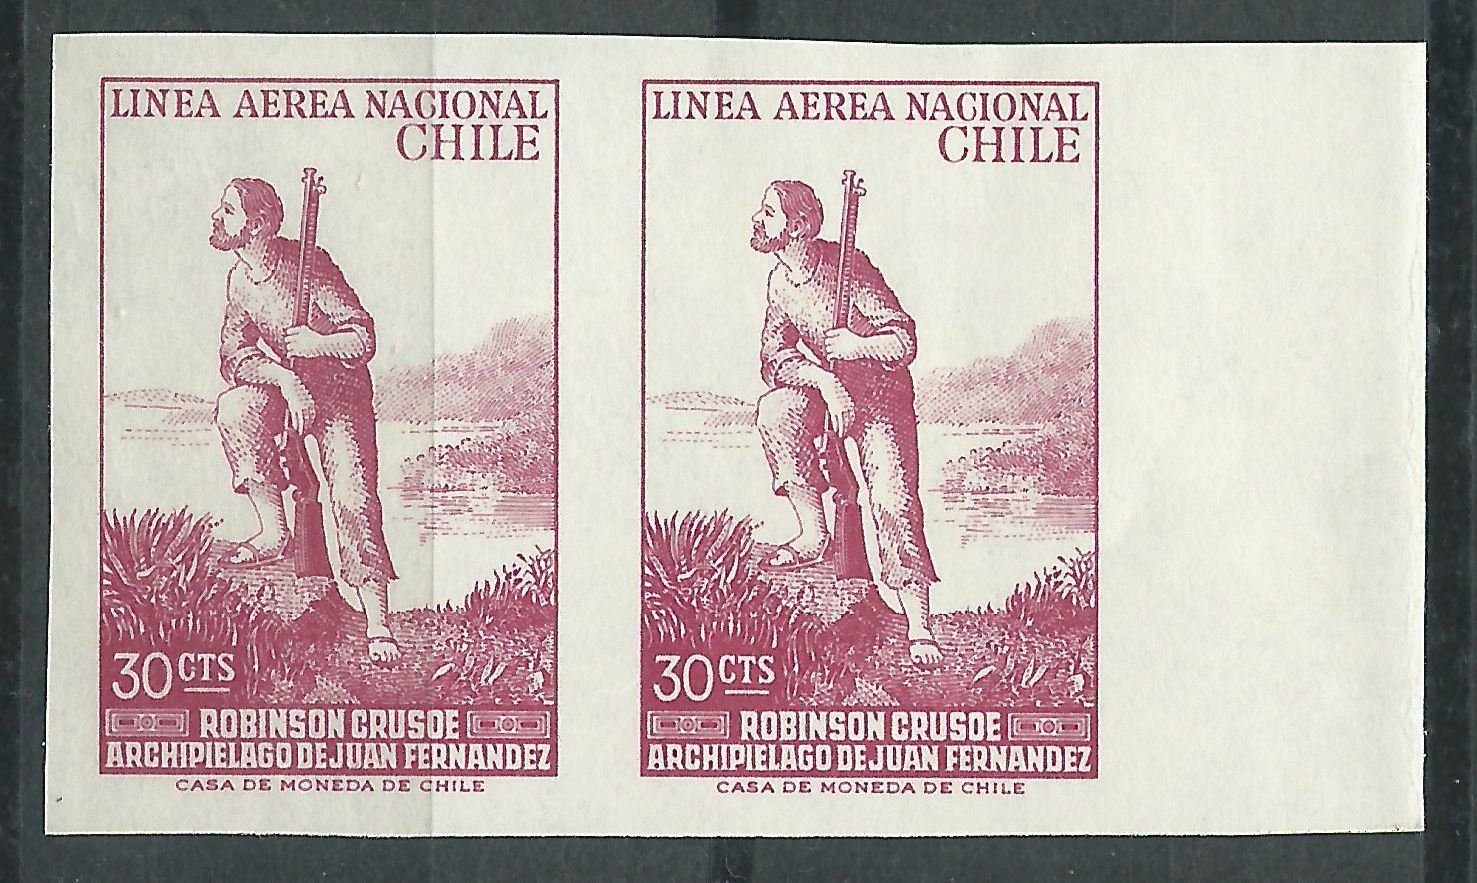 Chile - imperforate proof pair on card stock of Scott #349 (1965)